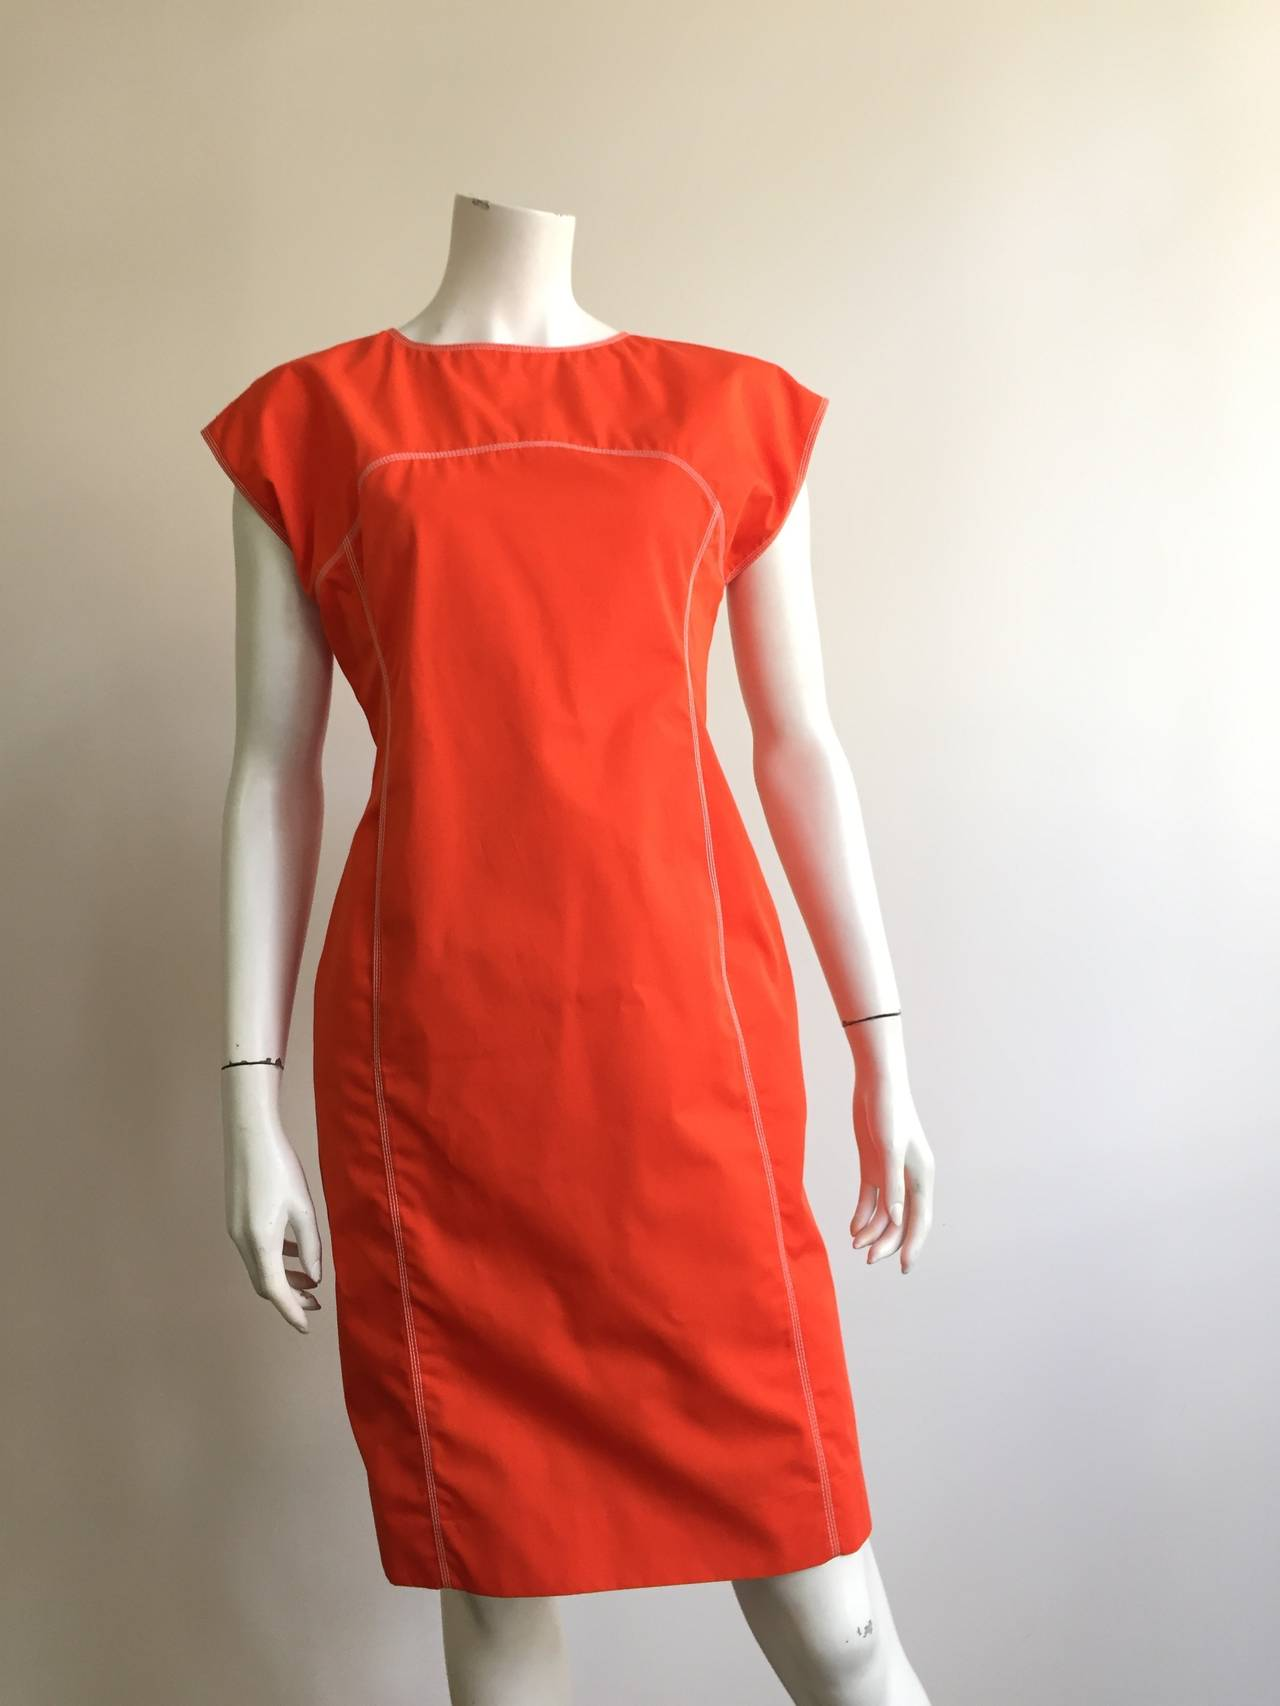 Courreges Paris 1980s orange dress with front pockets original size 40 but could fit a size 8.  Please see & use measurements to measure your body to make sure this will fit you perfectly.